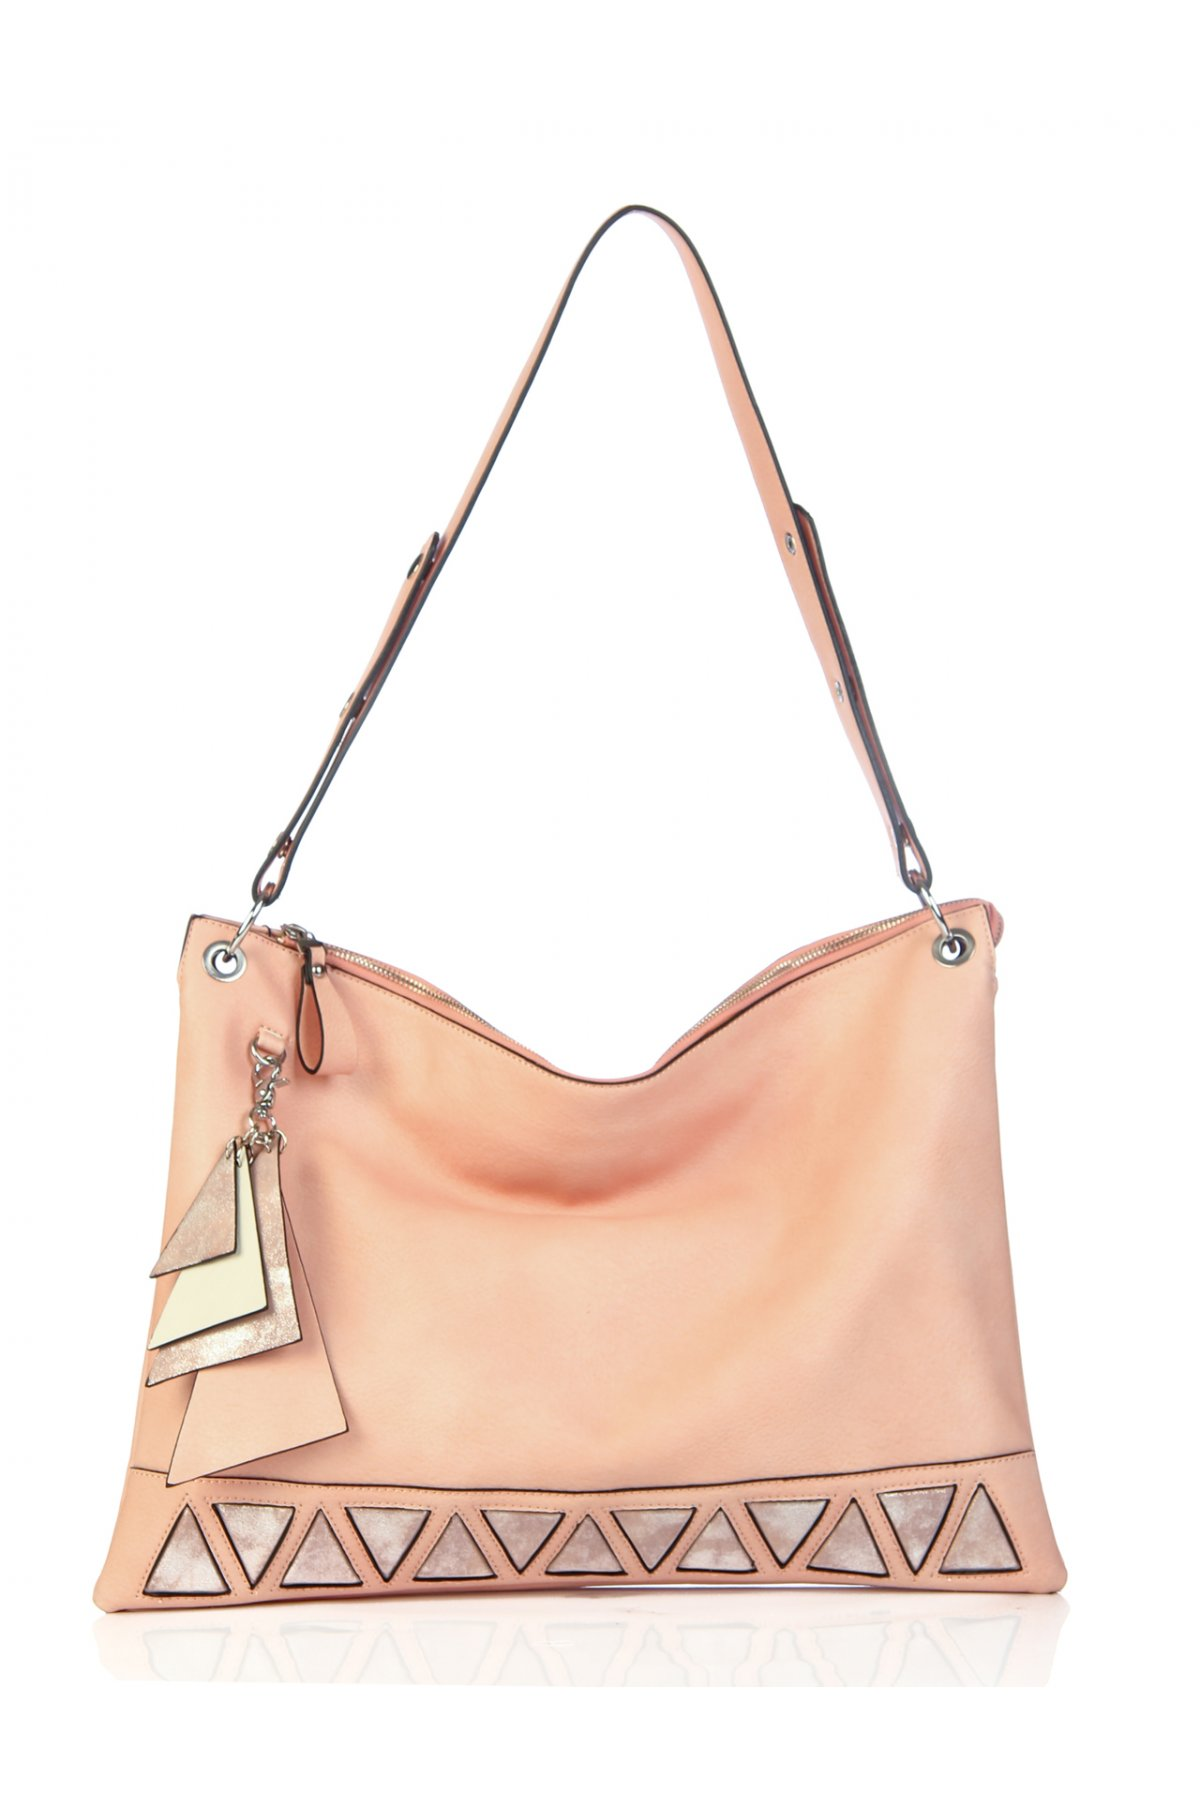 Clup Fashion the new summer collection of handbags in 2016